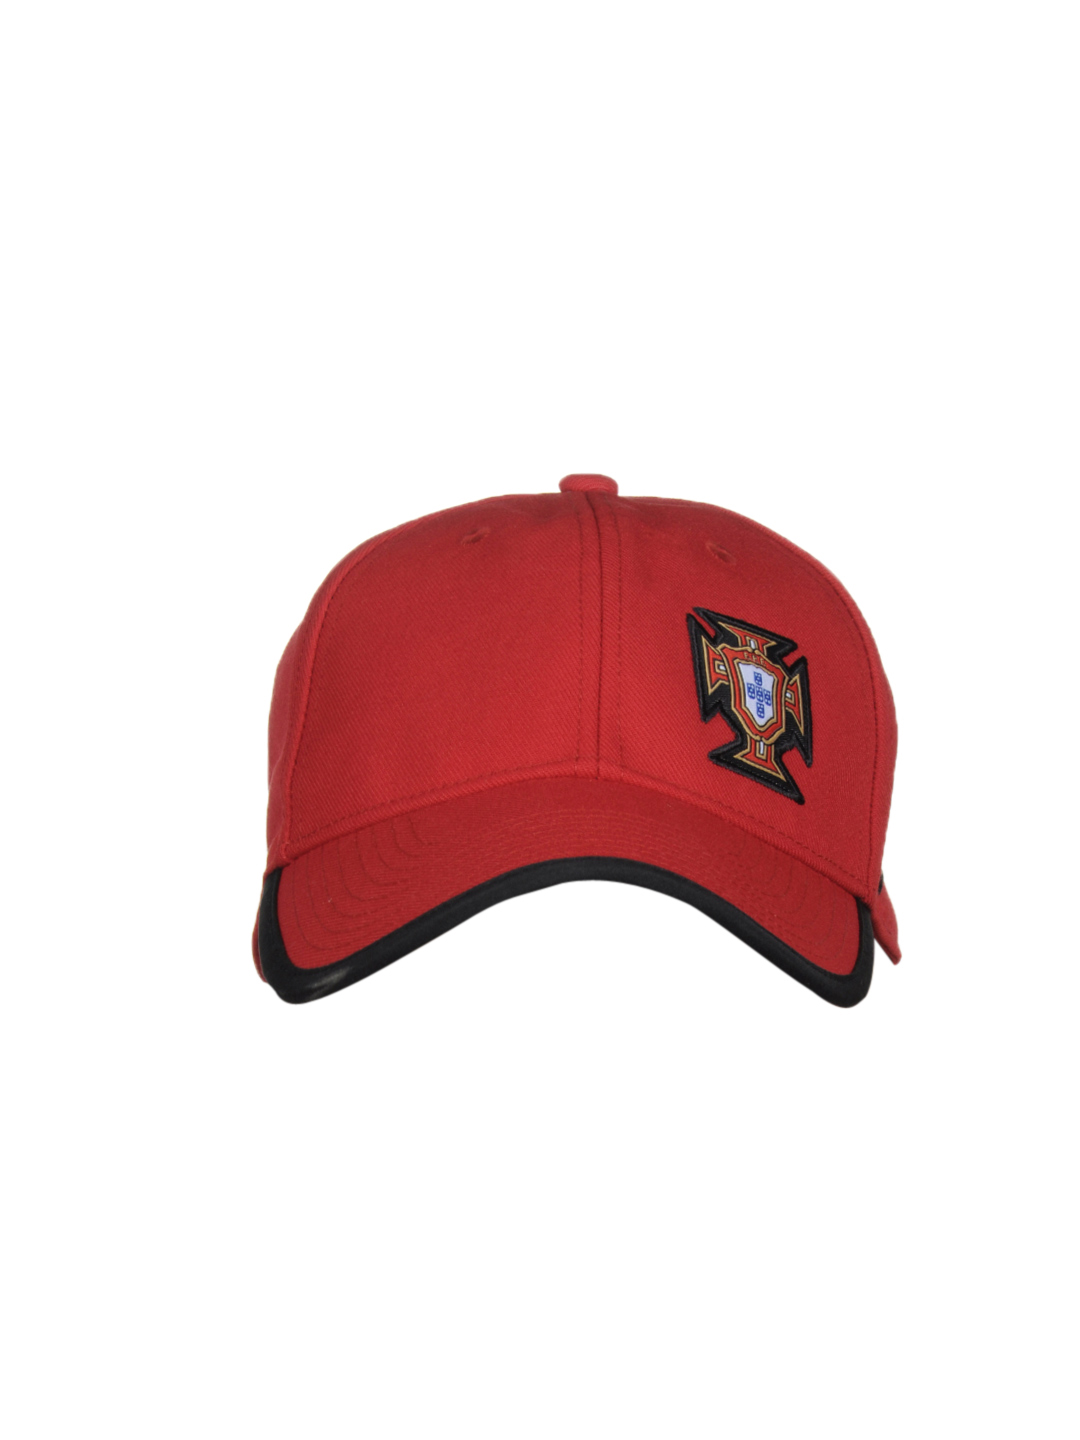 Nike Unisex Red Portugal Football Cap